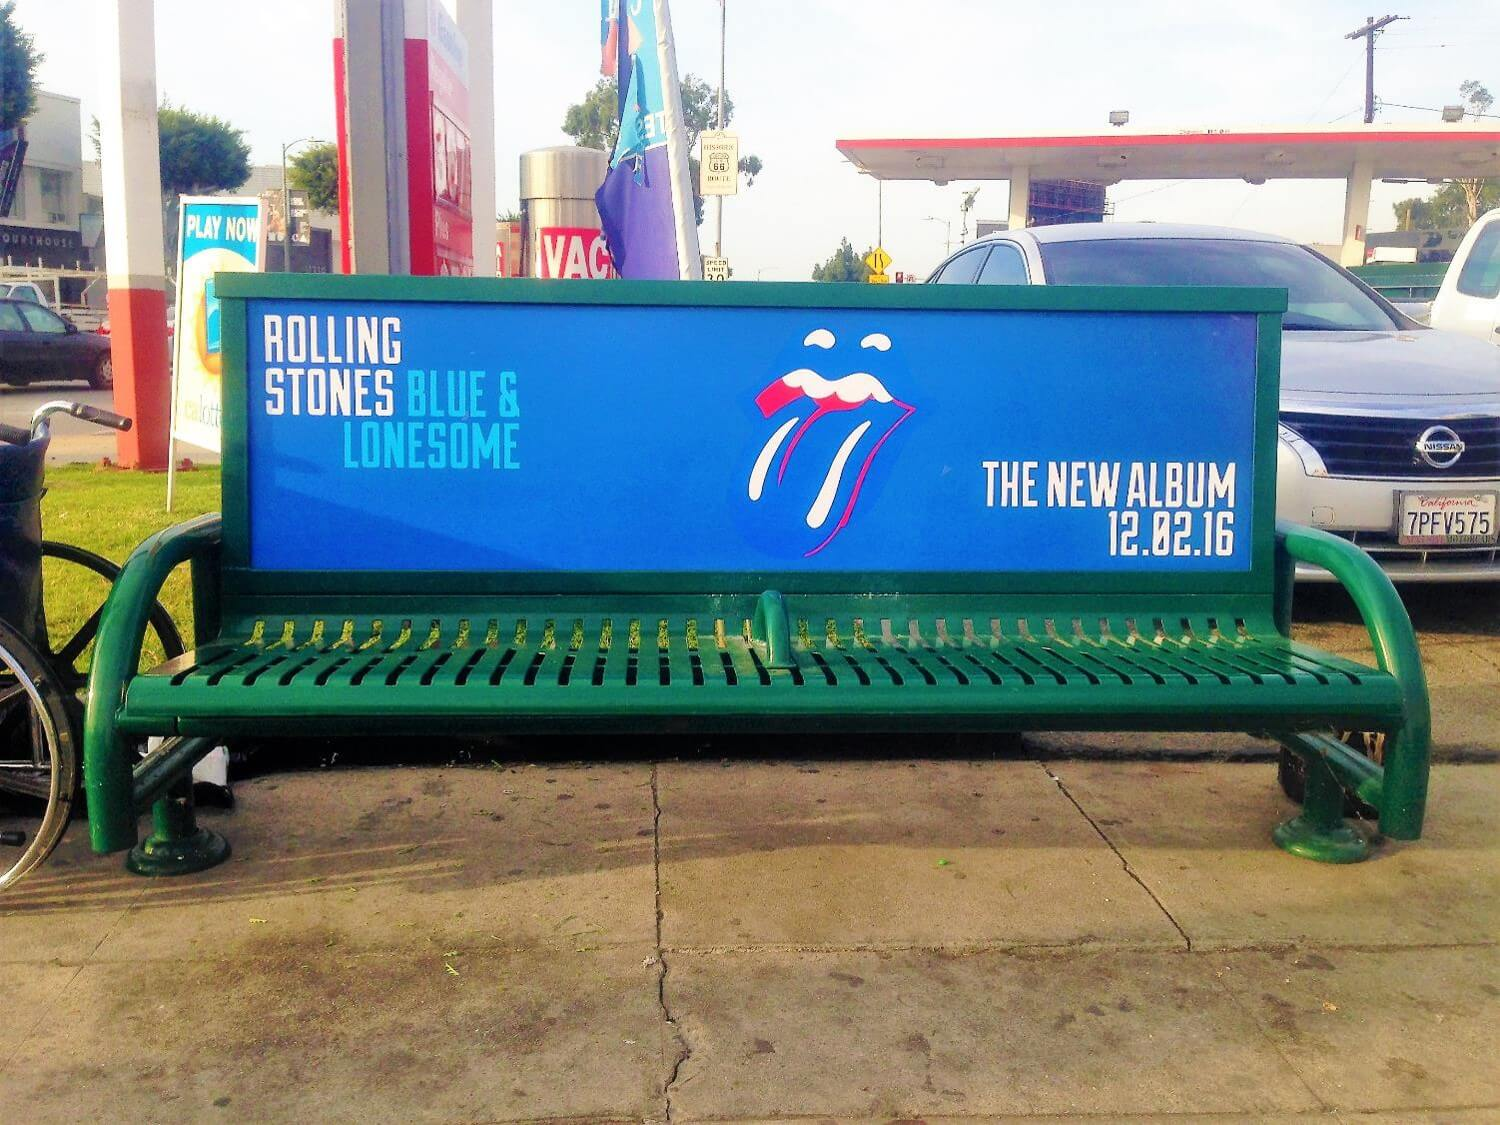 Case Studies For Bus Bench Advertising Bus Bench Ads